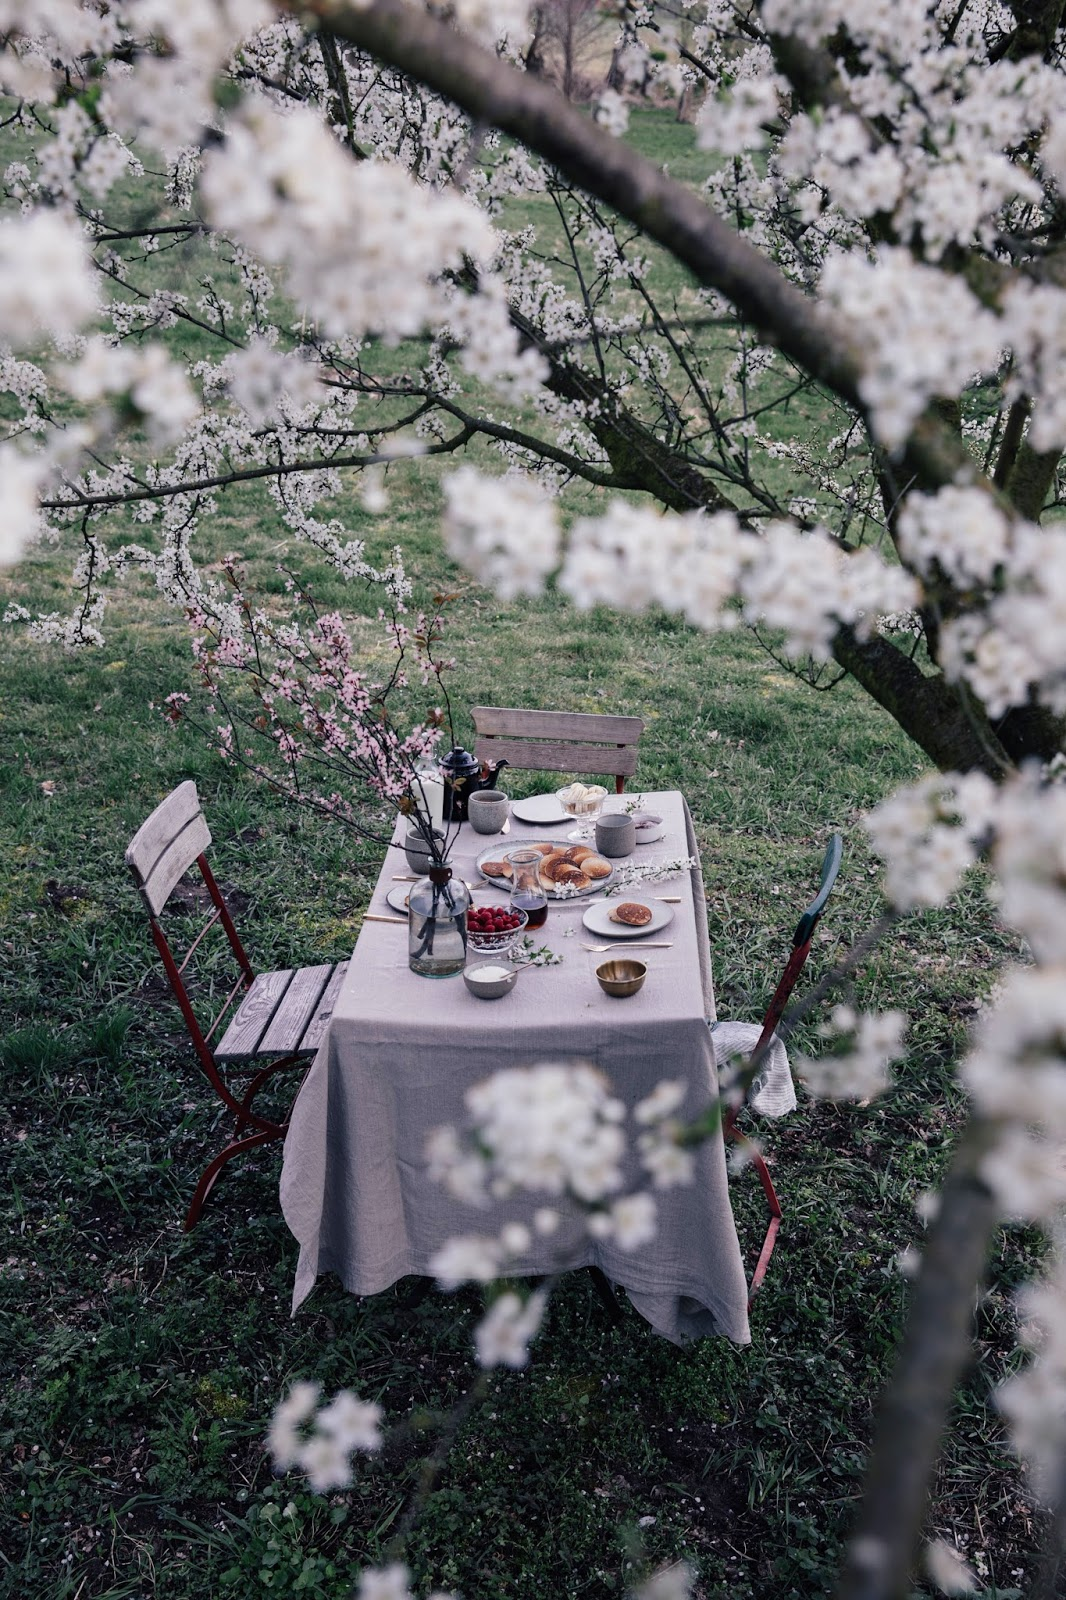 Spring-Breakfast under a Plum Tree